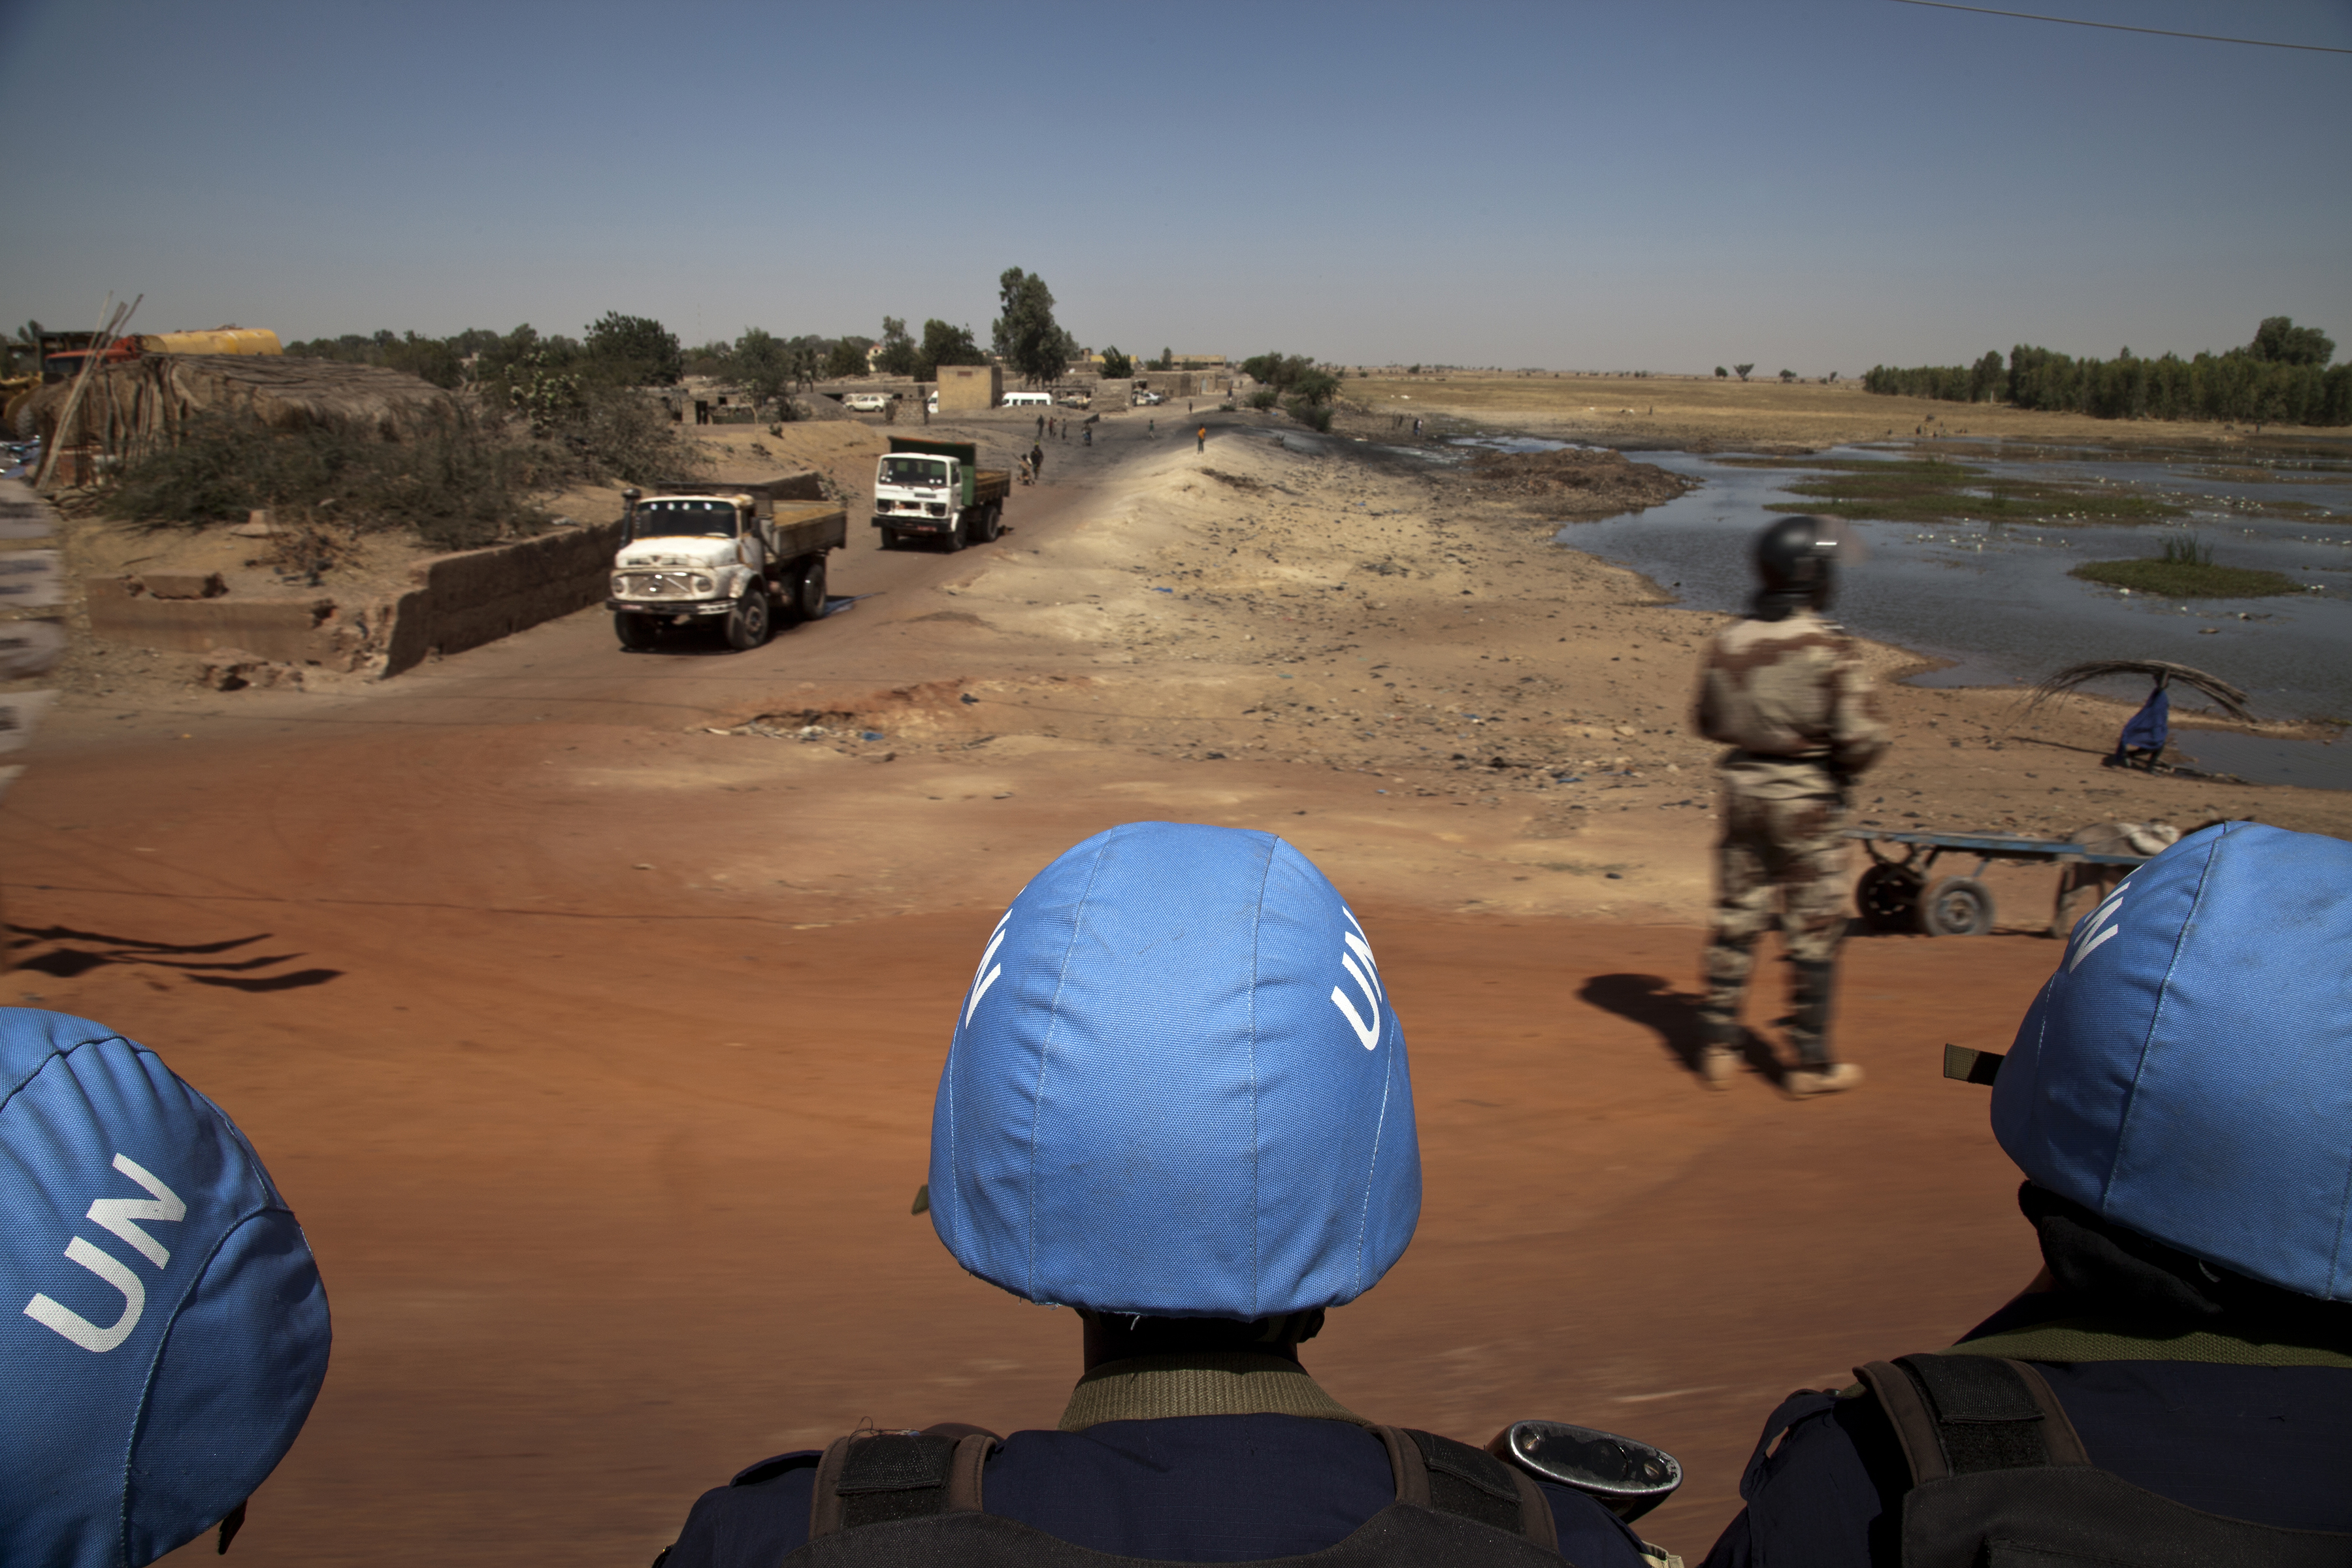 UN-Friedensmission in Mali